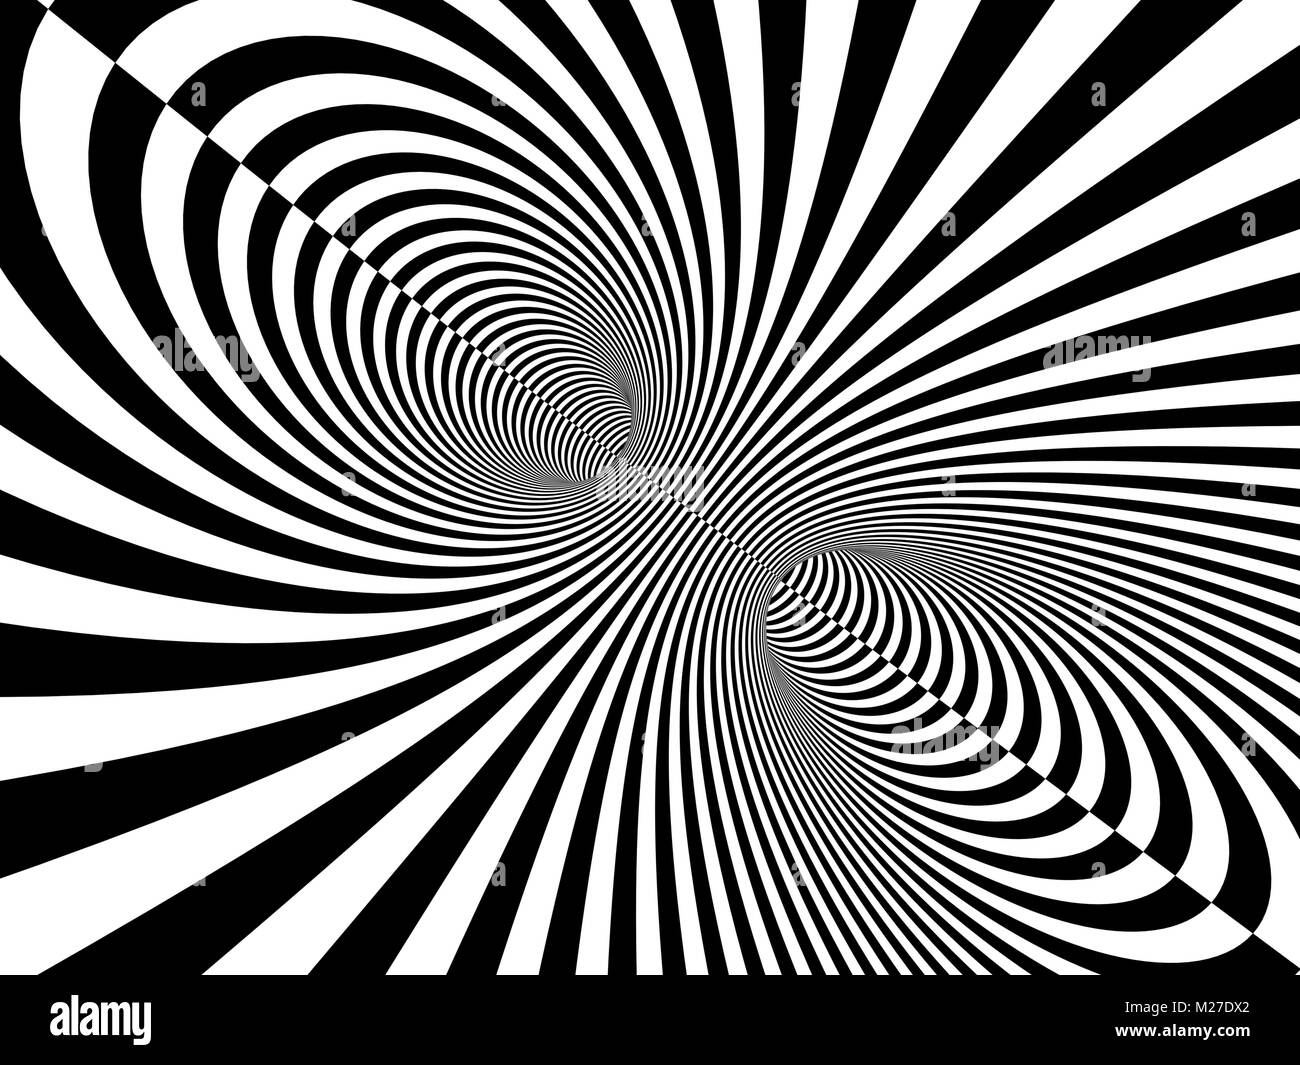 Abstract illusion. Black and white. Background with tube shape with striped pattern. 3d render - Stock Image